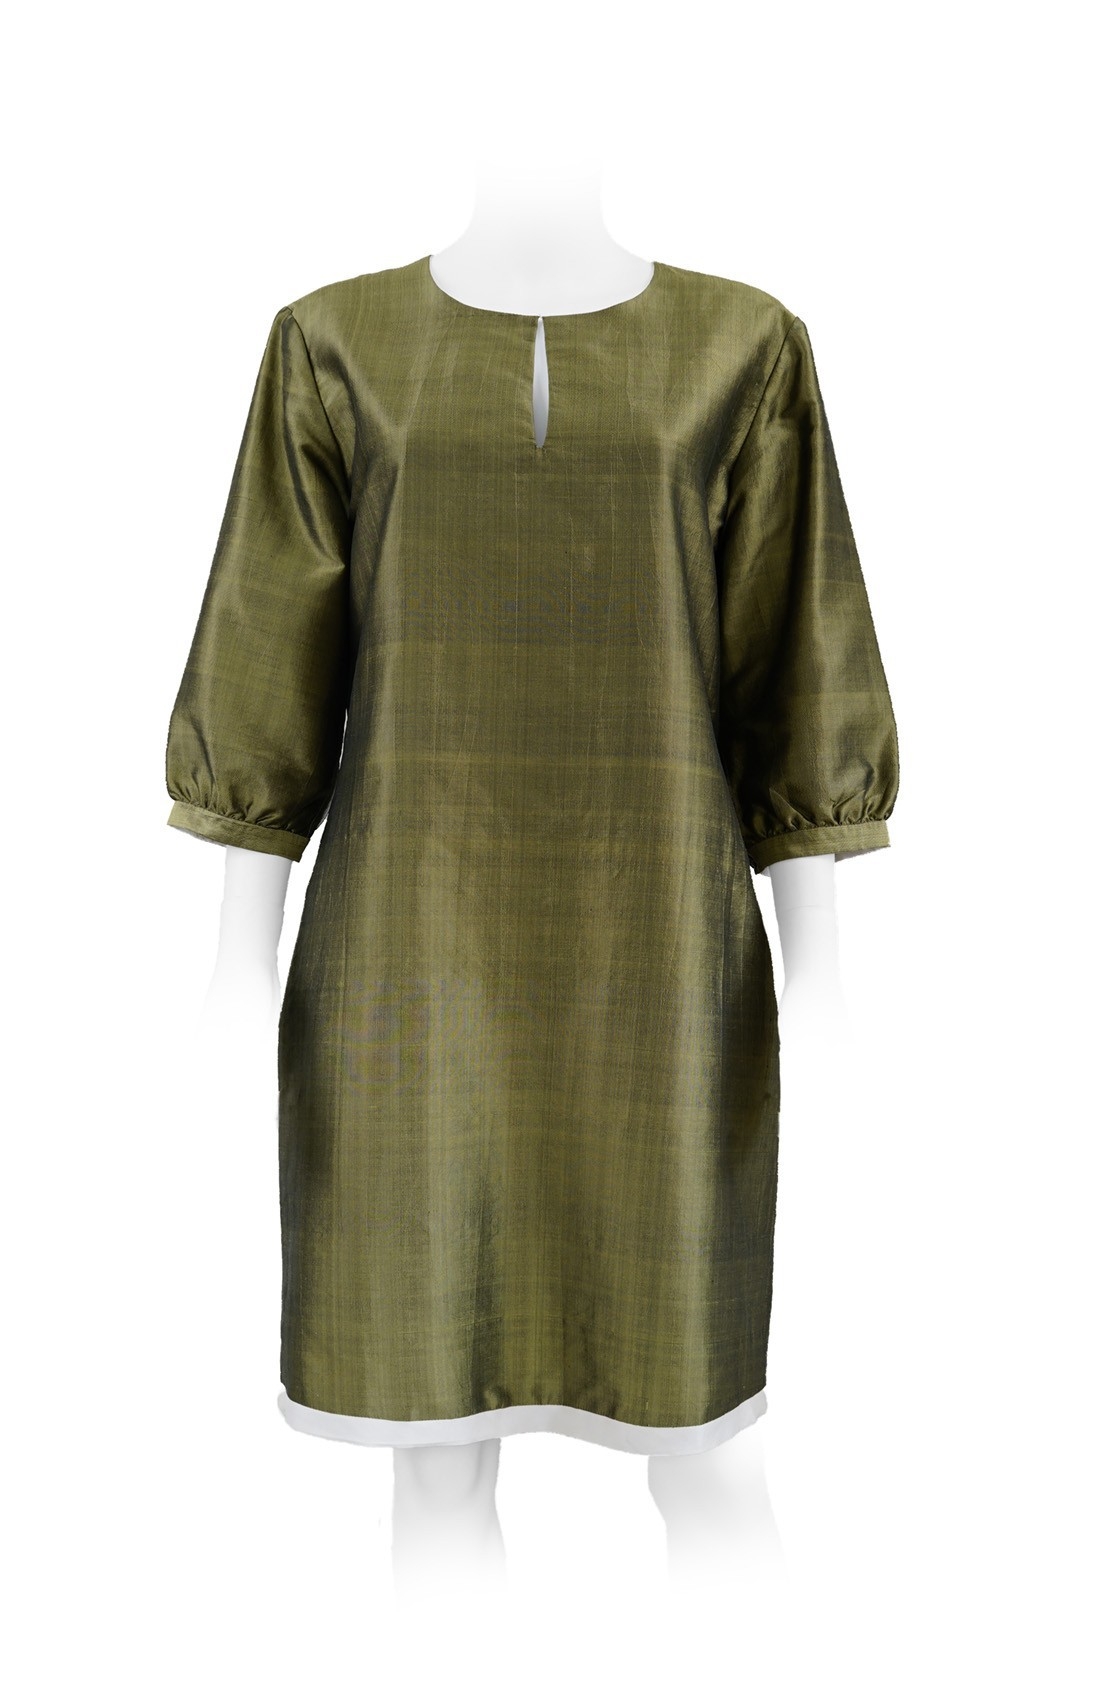 khaki and white pure silk dress, lined with white silk, handmade in Cambodia